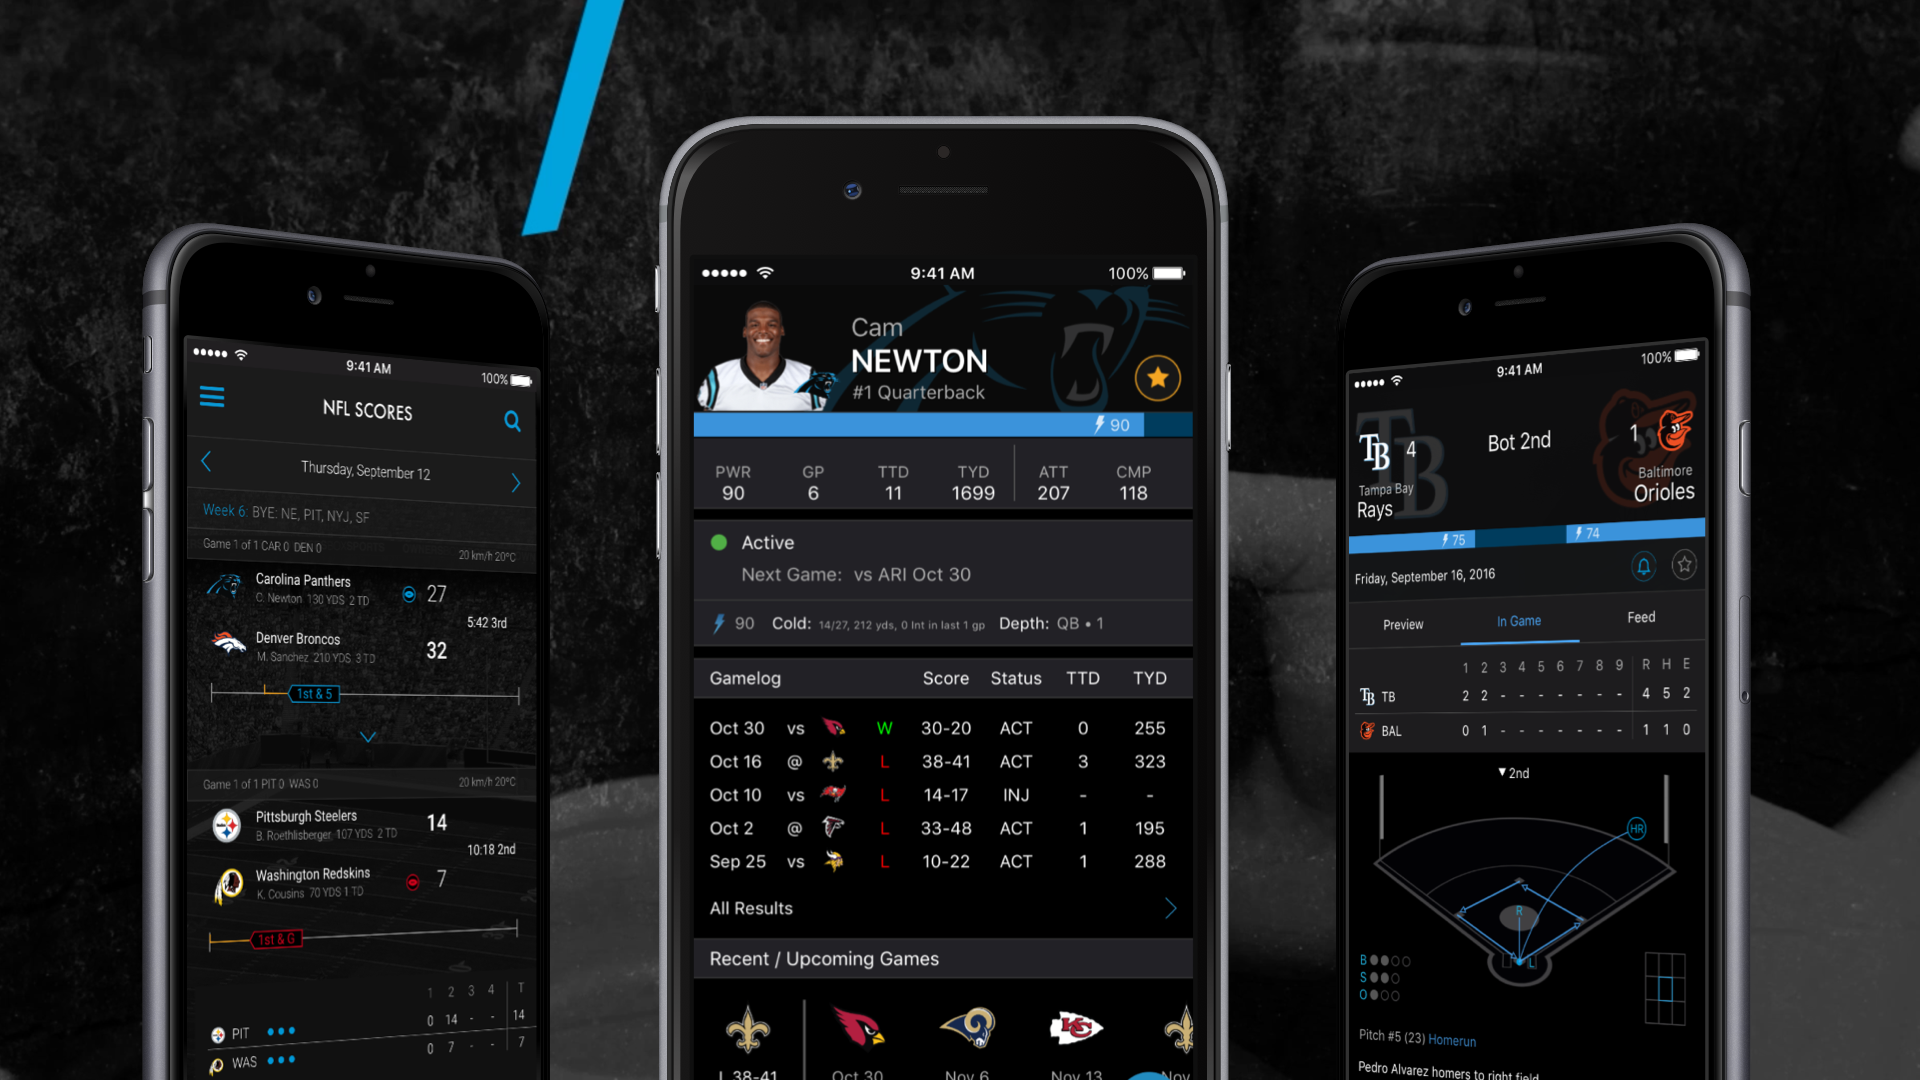 Consumer Fantasy Sports App Design